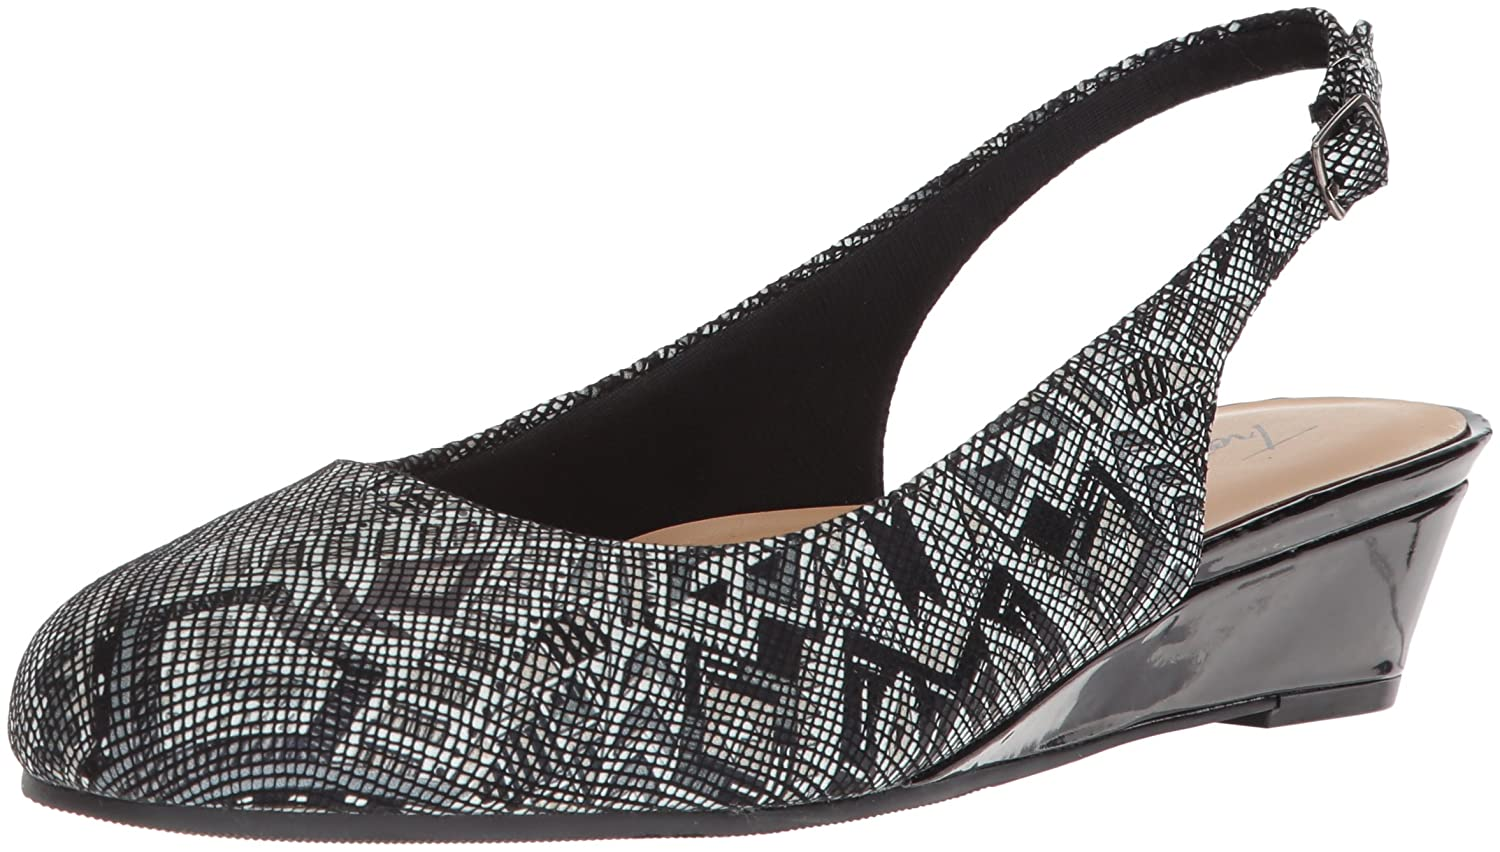 Trotters Women's Lenore Pump B073C6HGDP 12 B(M) US|Black/Multi